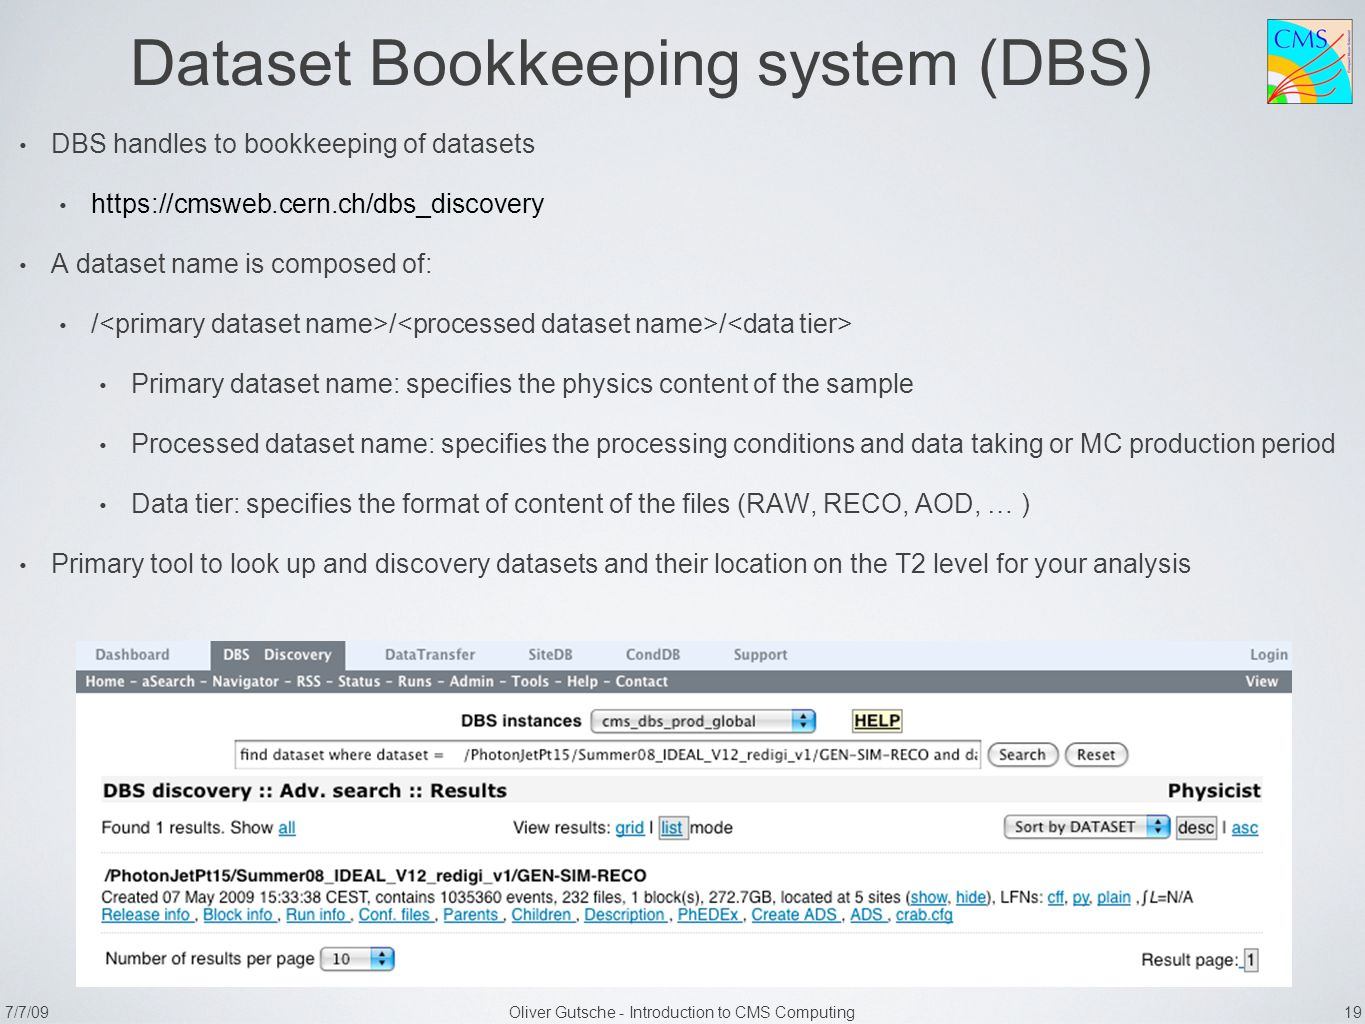 7/7/09Oliver Gutsche - Introduction to CMS Computing 19 Dataset Bookkeeping system (DBS) DBS handles to bookkeeping of datasets https://cmsweb.cern.ch